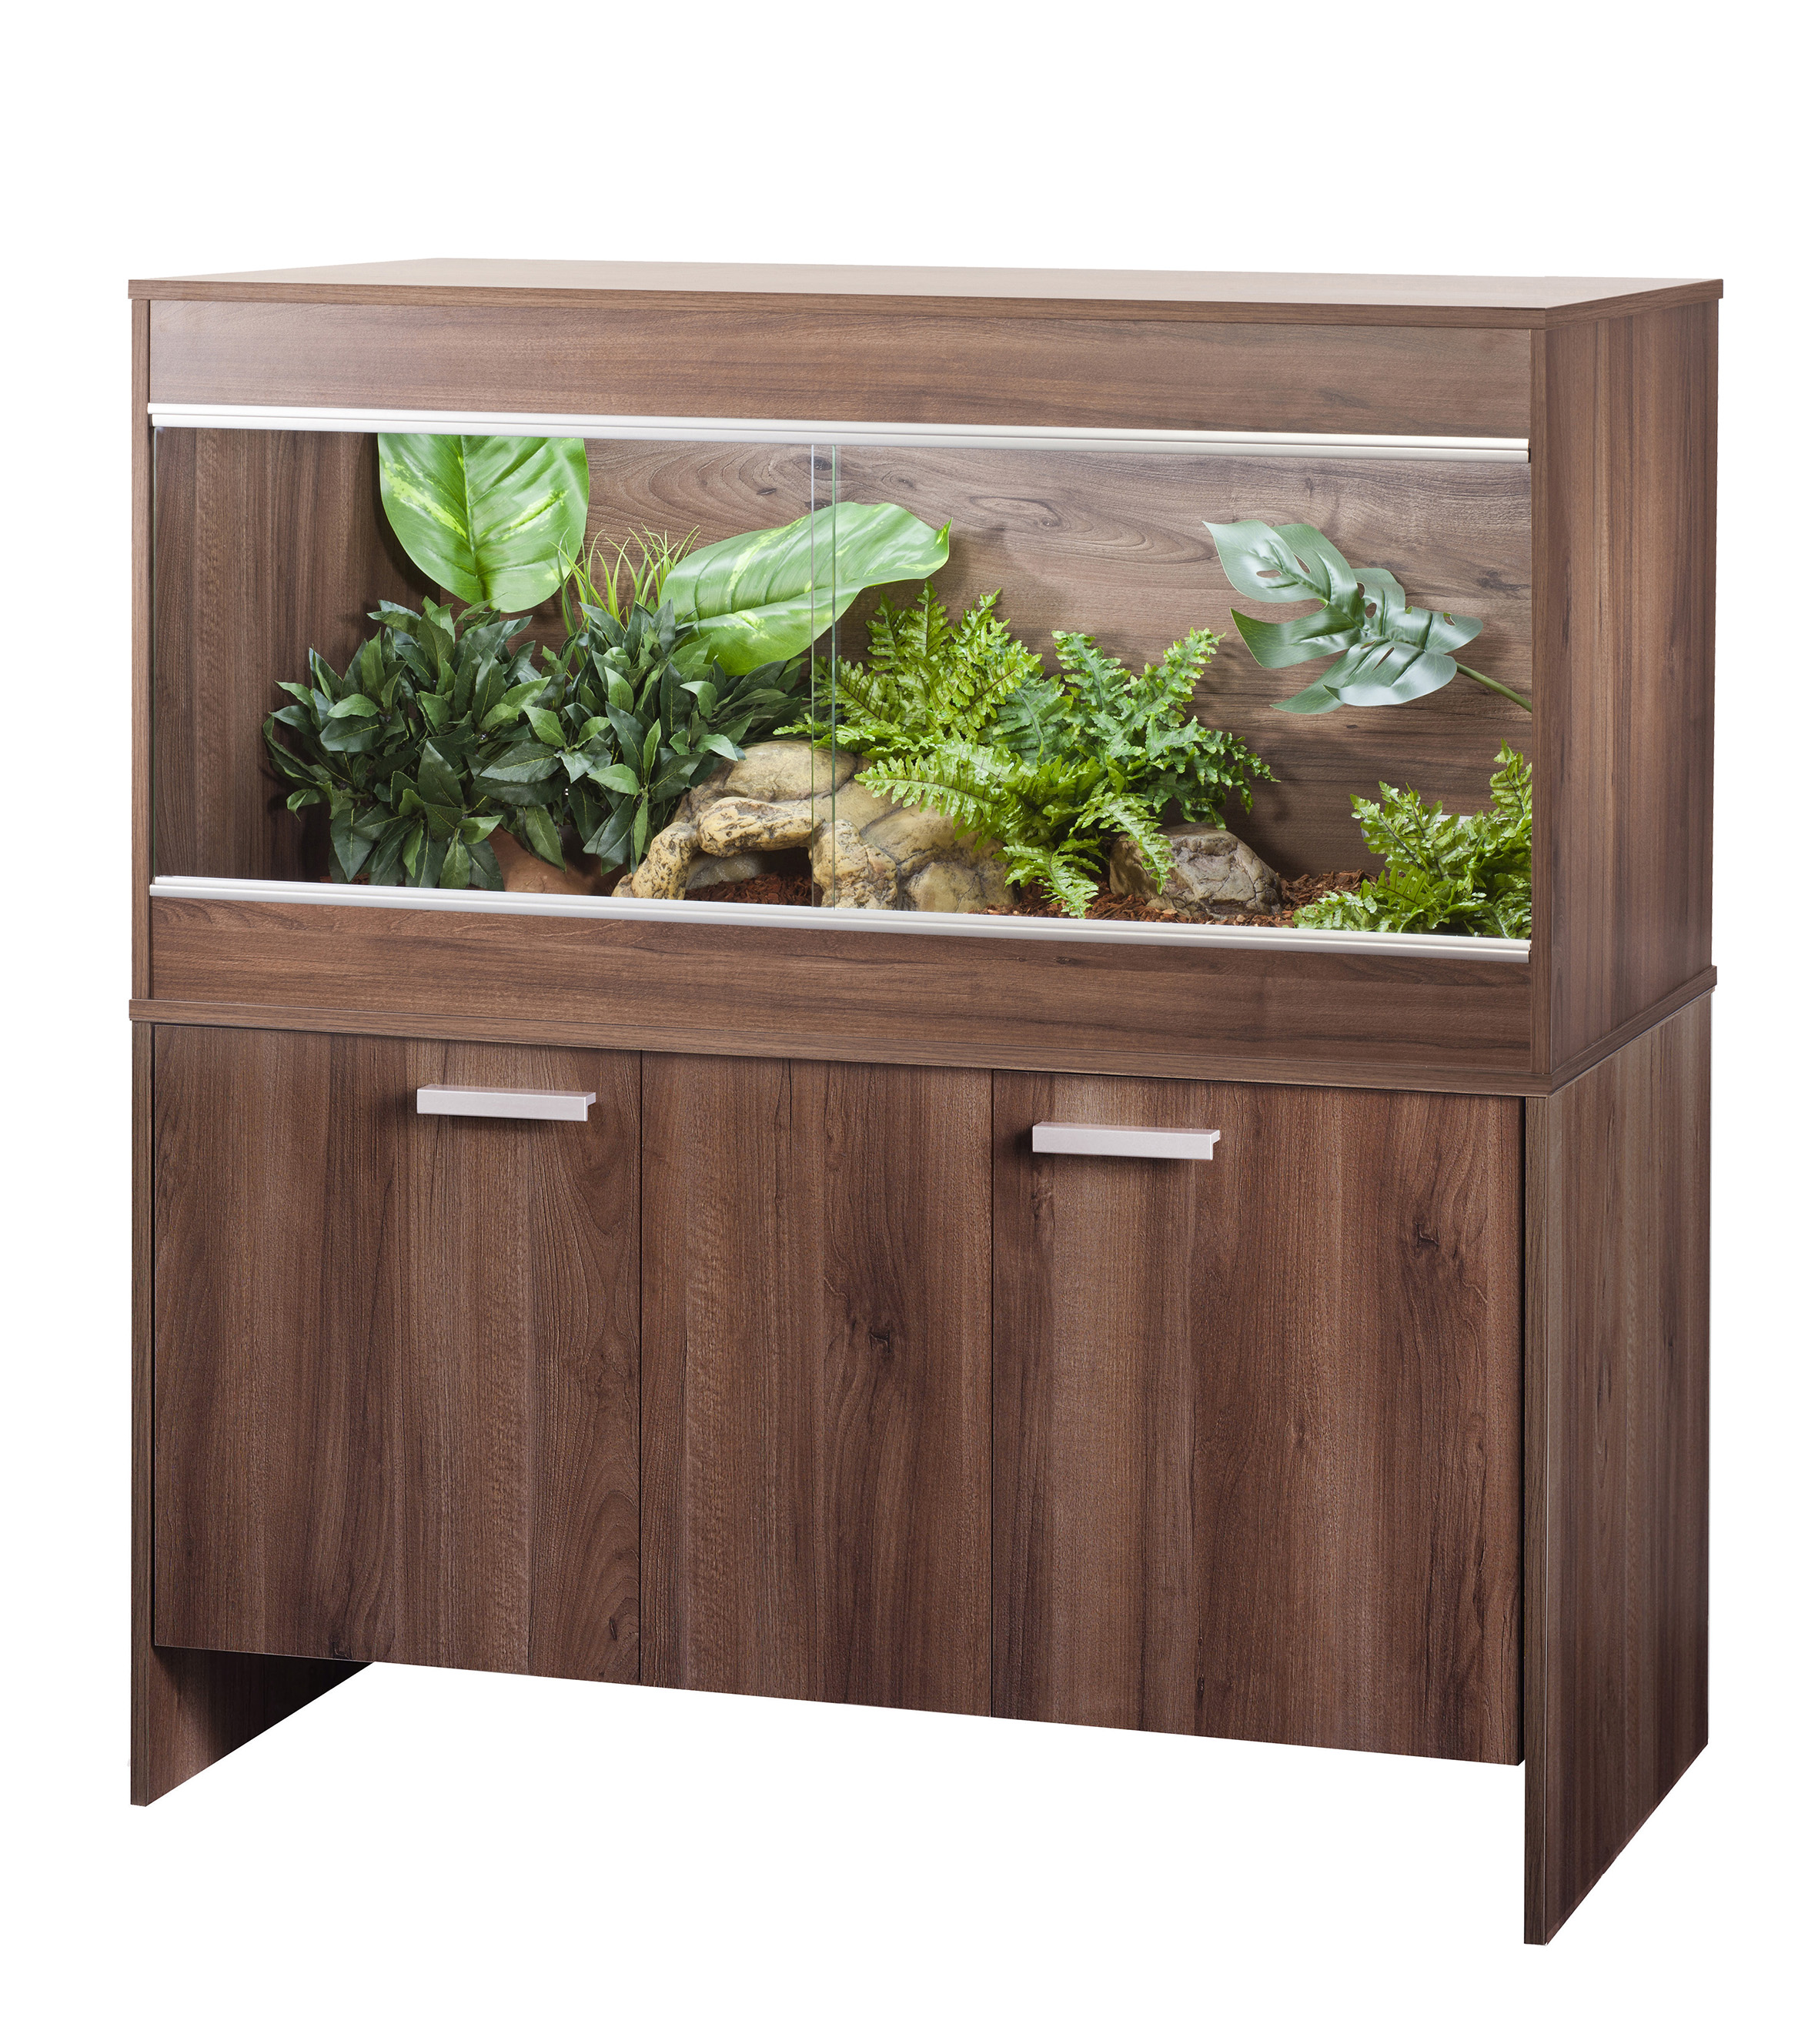 Repti-Home Vivarium & Cabinet - Maxi Large Walnut